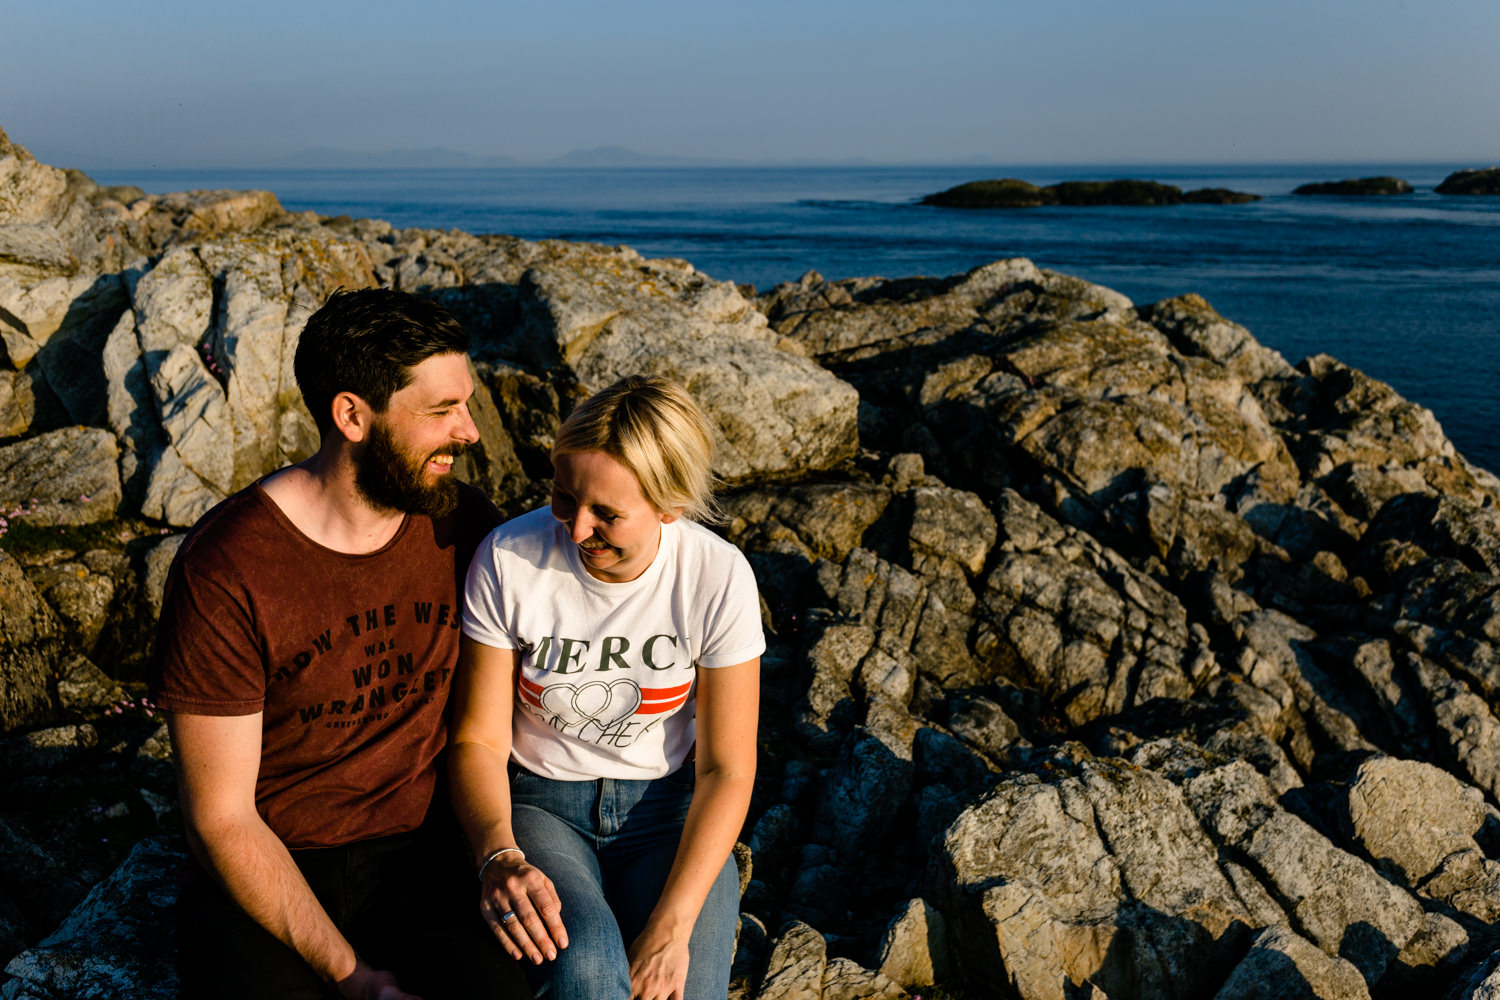 Anglesey Wedding photographers capture a couple laughing together on the headland rocks.